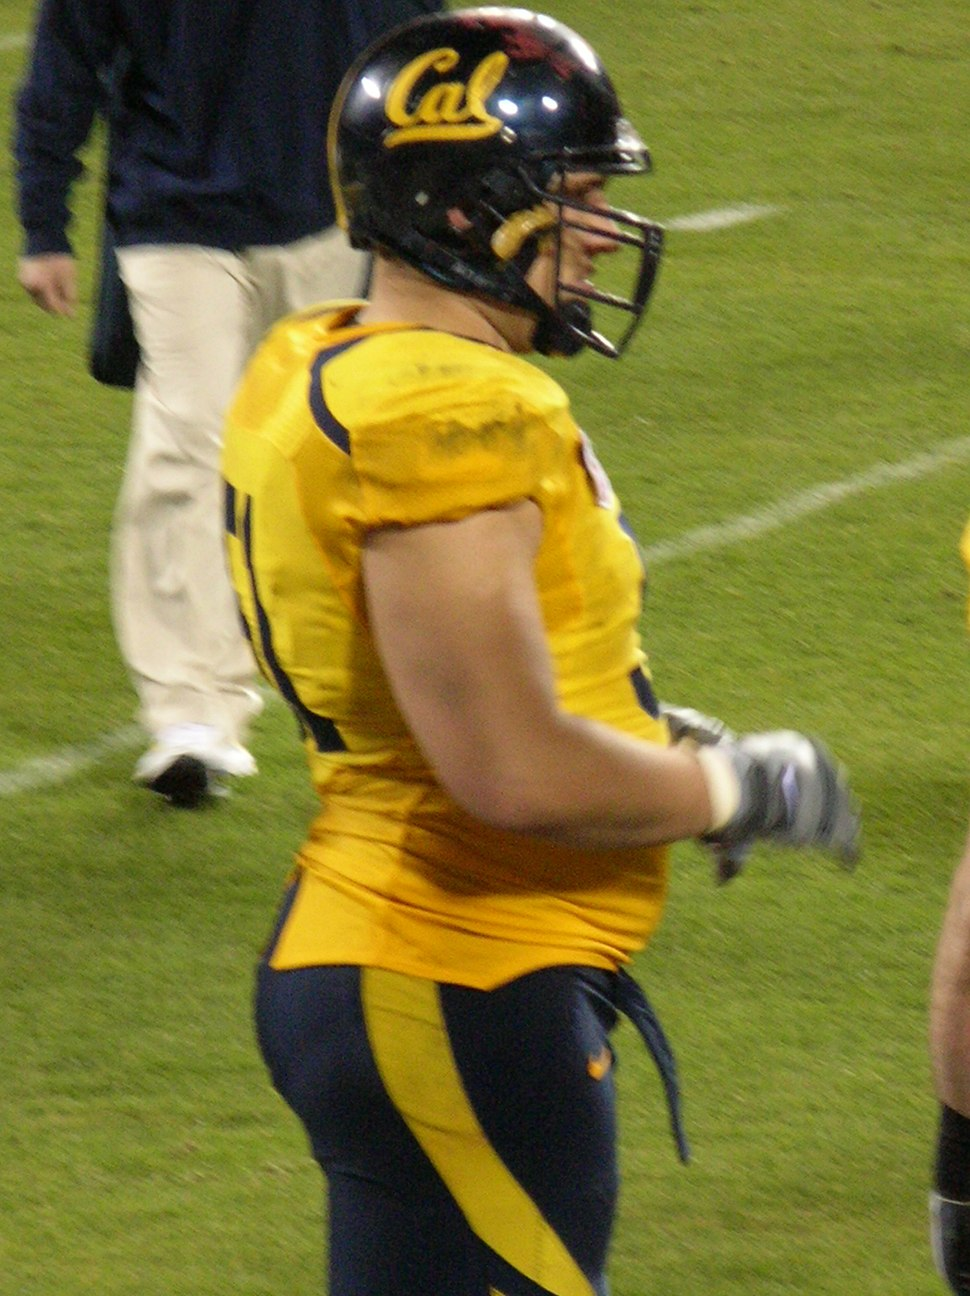 Alex Mack at 2008 Emerald Bowl